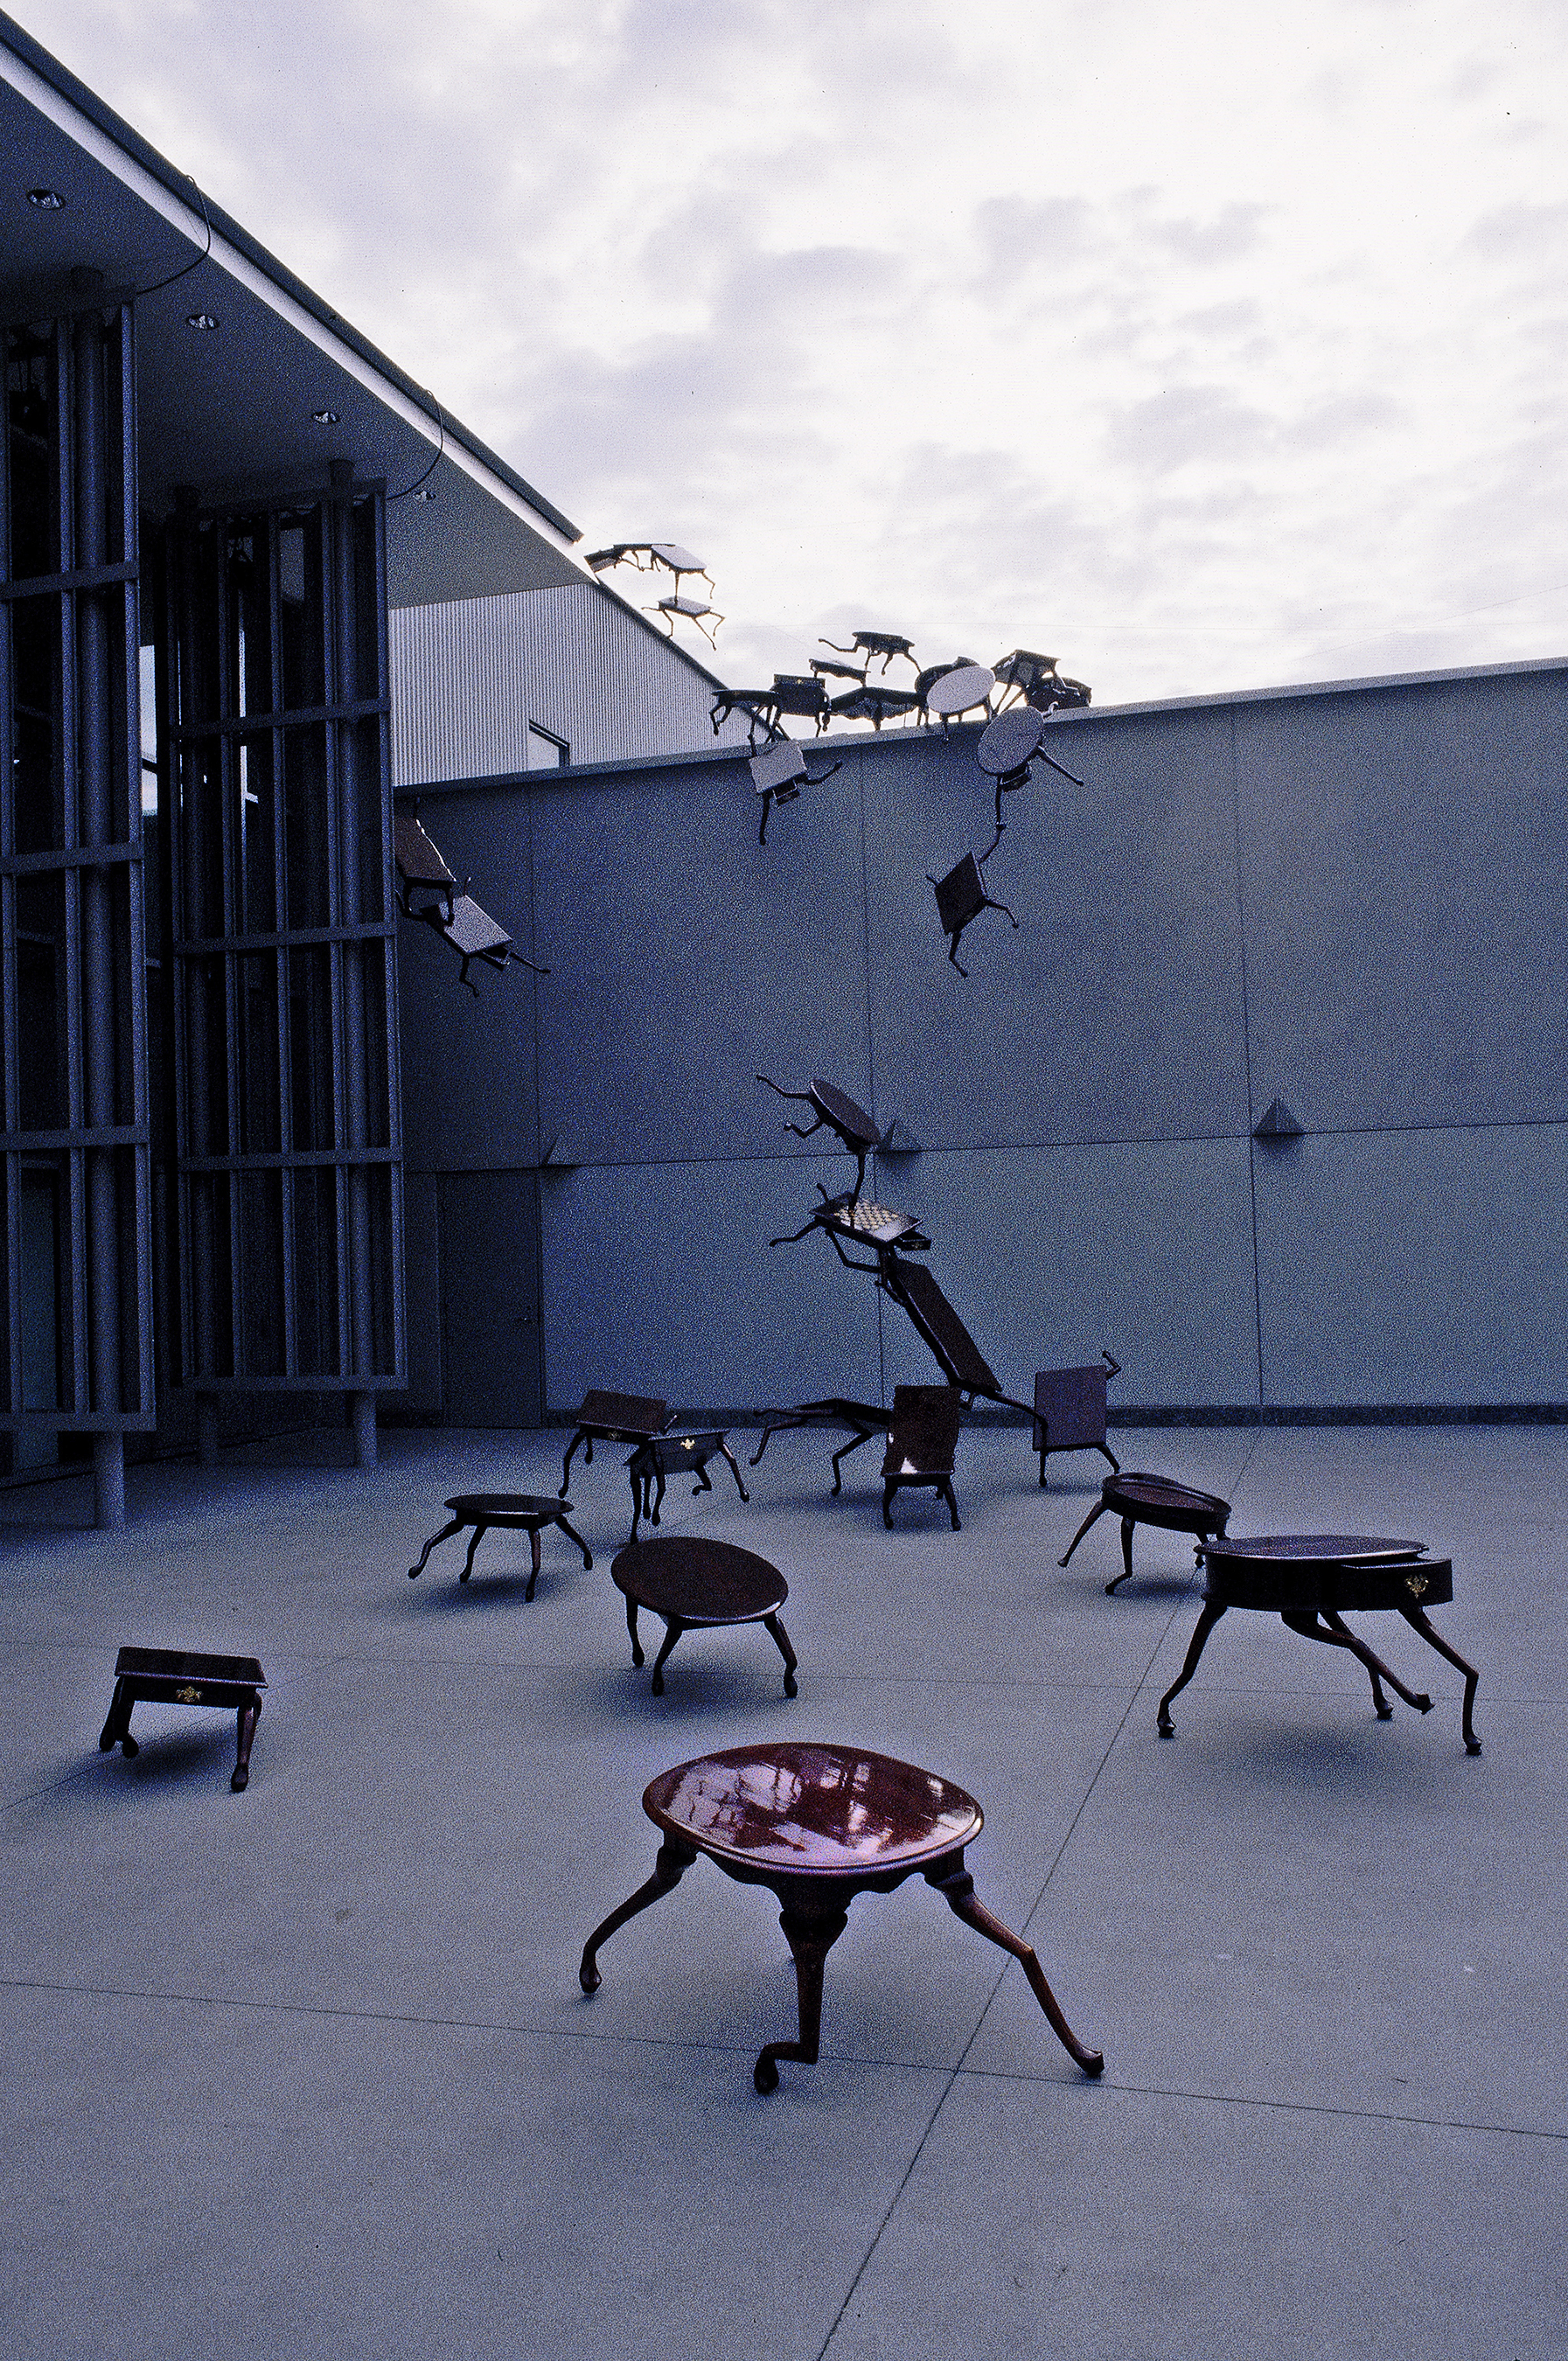 """Marion Gray, Brian Goggin, """"Herd Morality,"""" 1994, printed 2014. Archival pigment print. © Marion Gray. Courtesy of the Oakland Museum of California."""